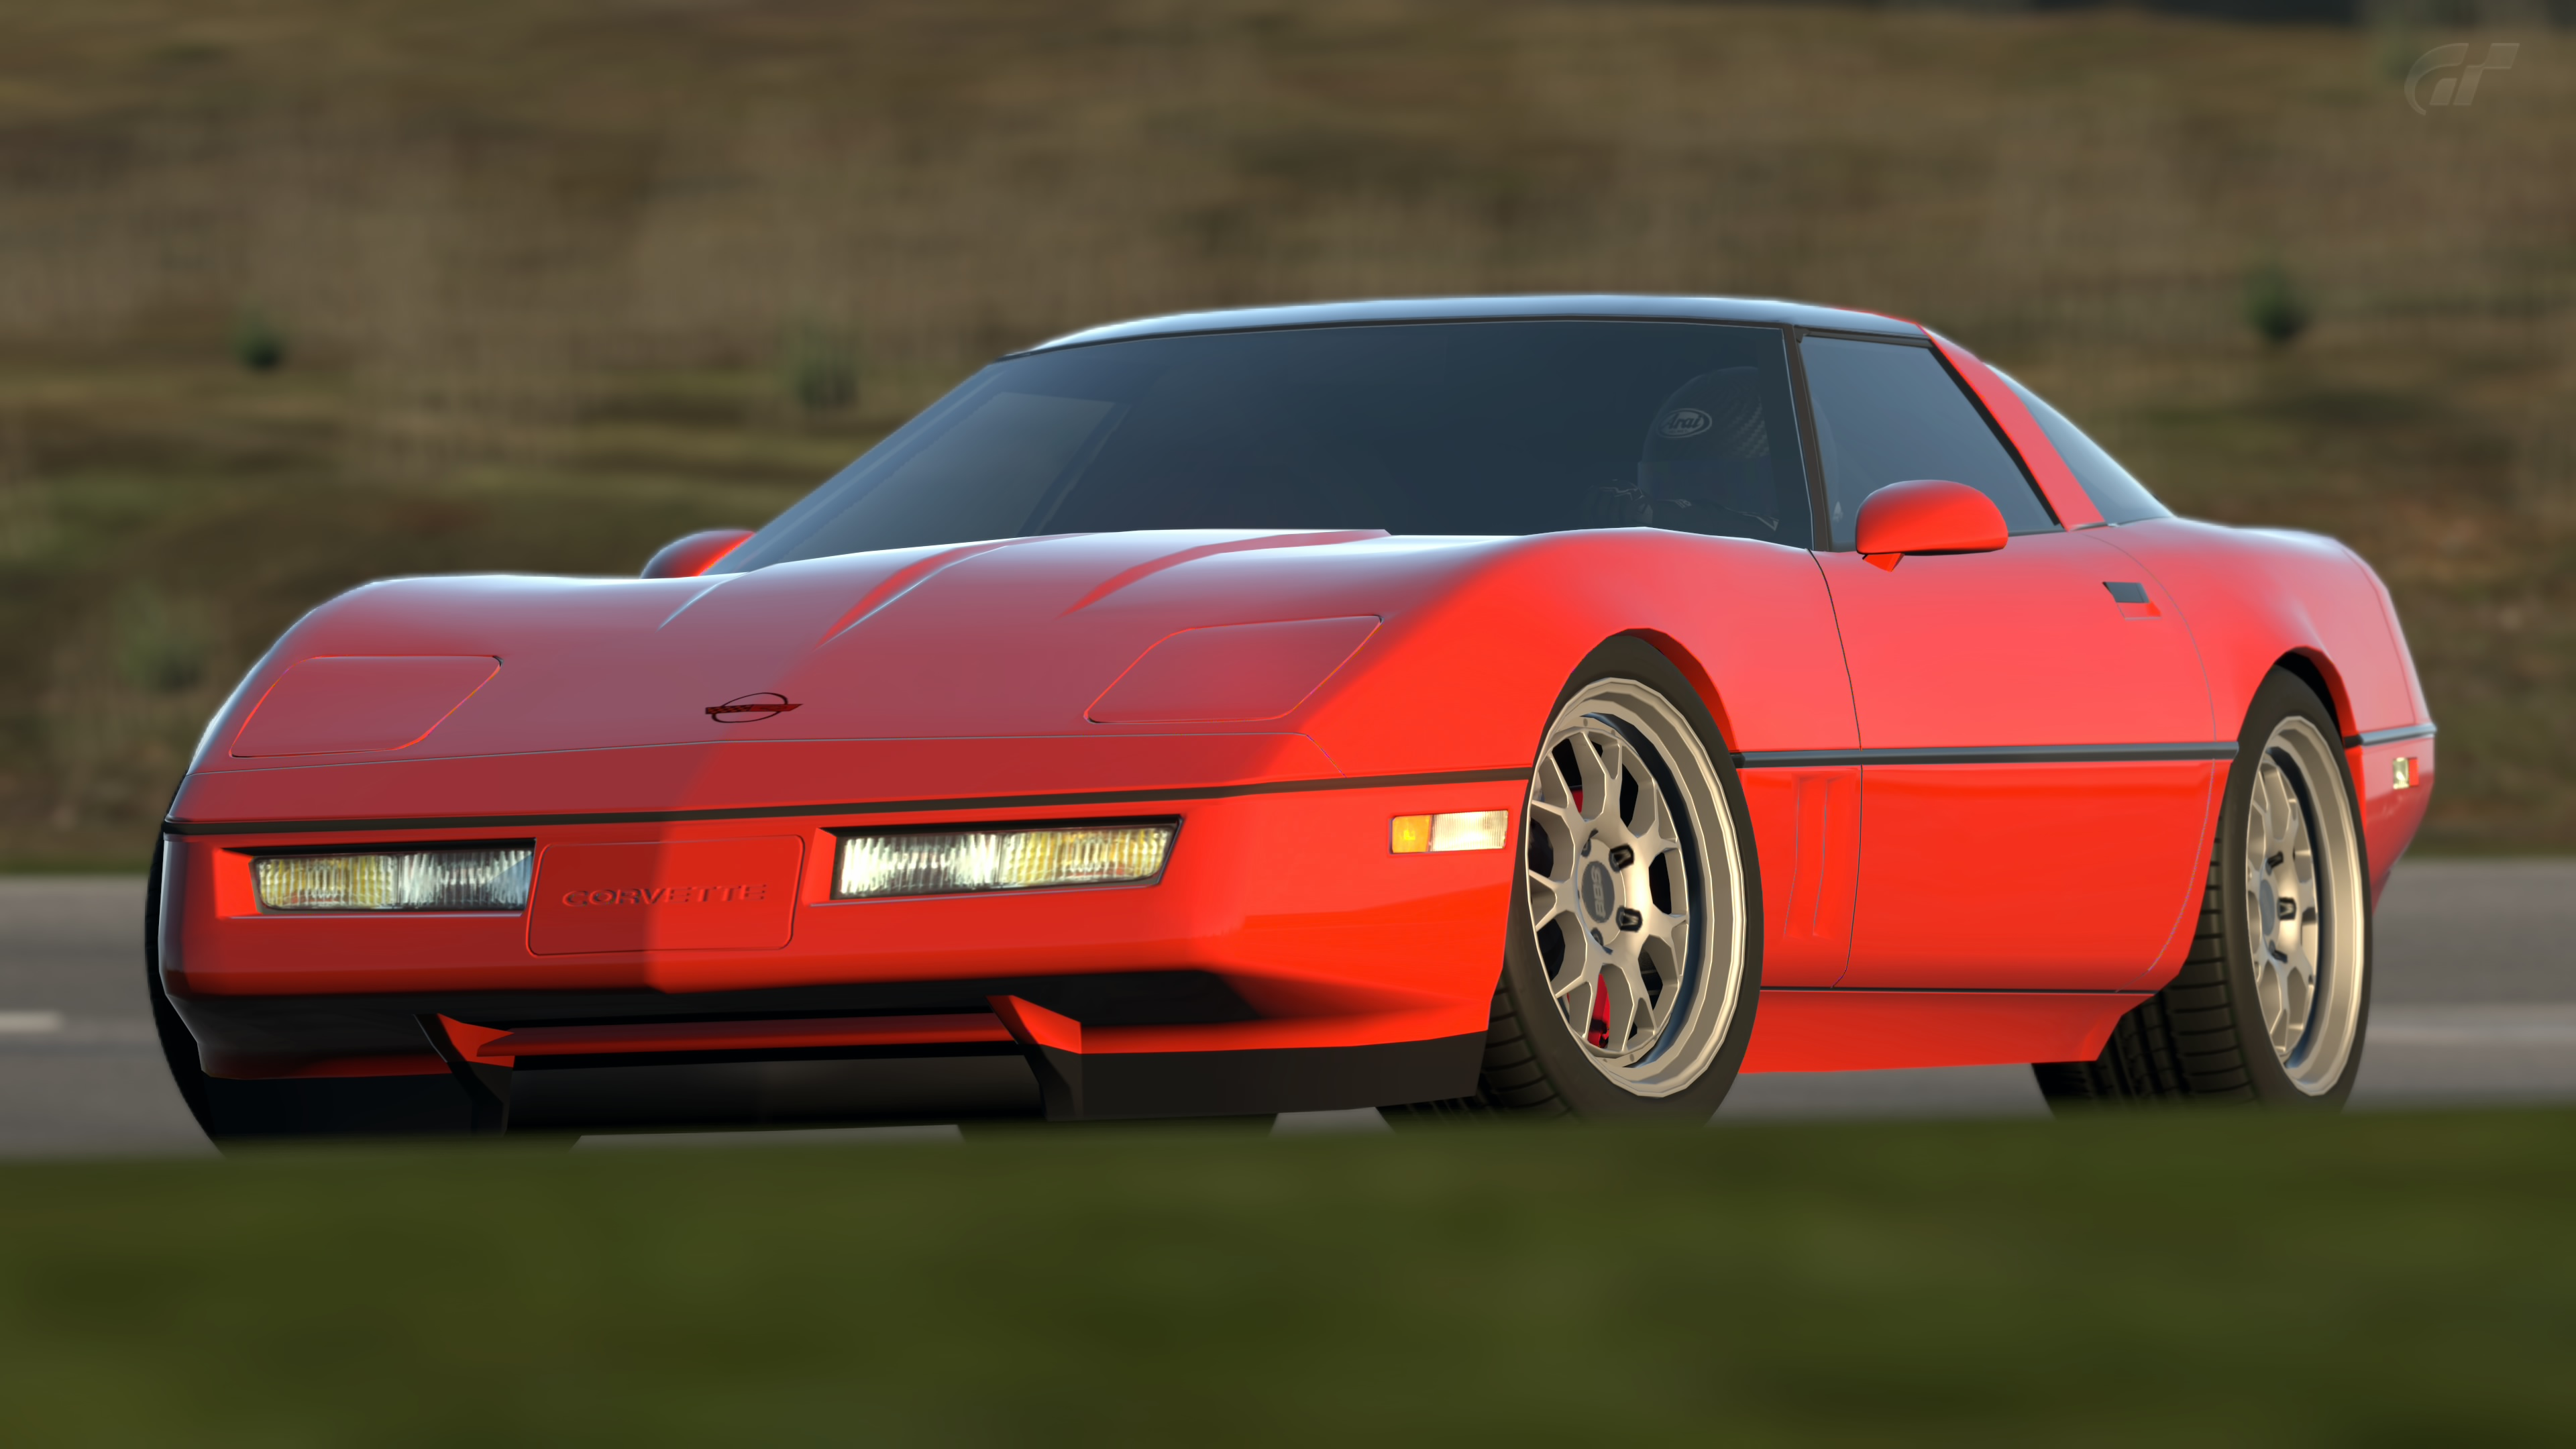 1990 chevrolet corvette zr 1 c4 gran turismo 6 by vertualissimo on deviantart. Black Bedroom Furniture Sets. Home Design Ideas